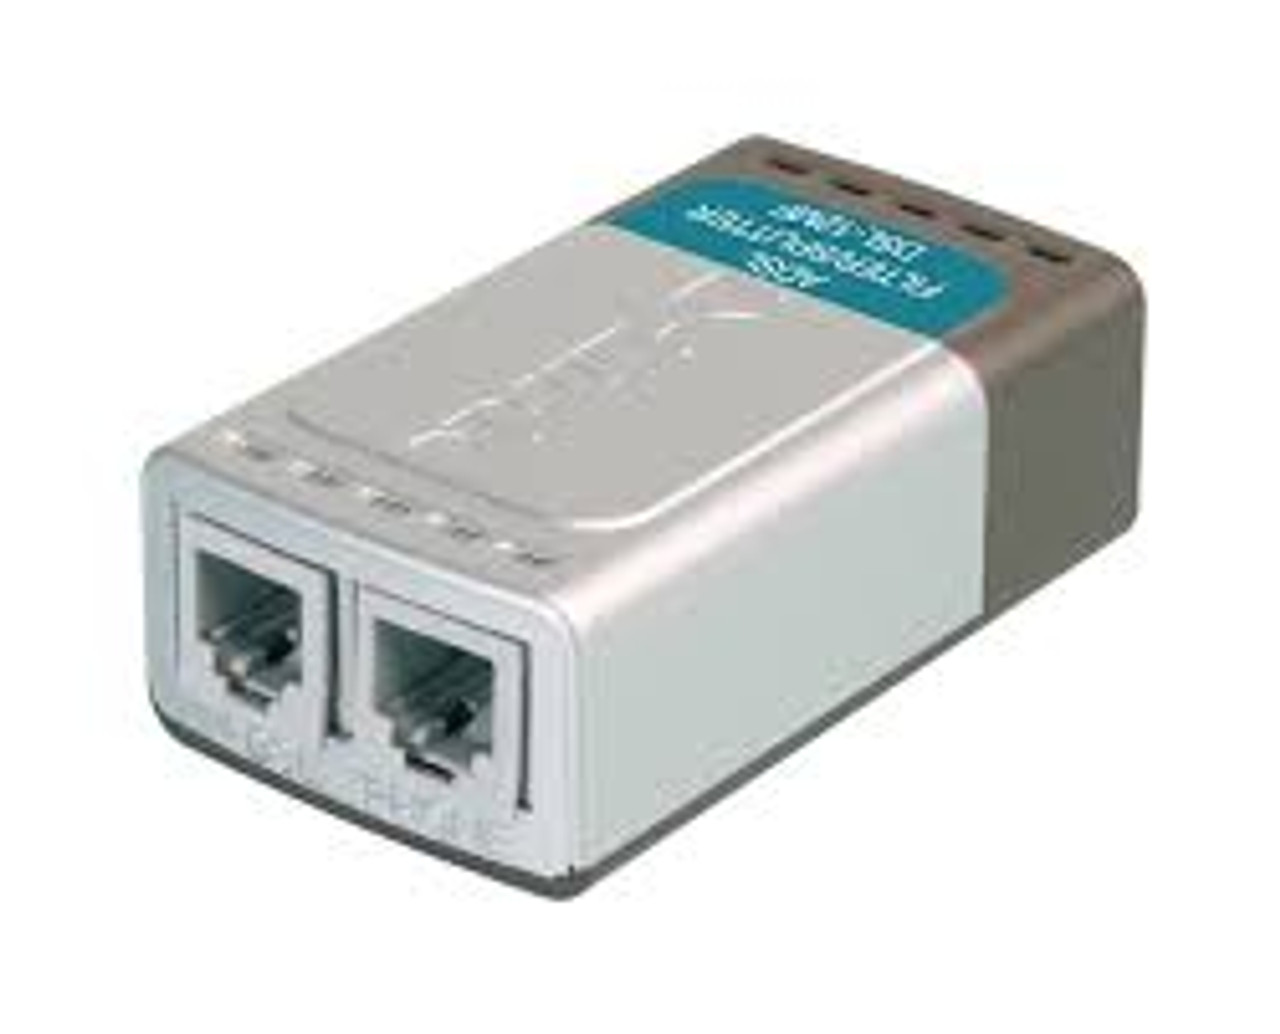 DLink ADSL Filter/Splitter (DSL-12MF) (DSL-12MF)